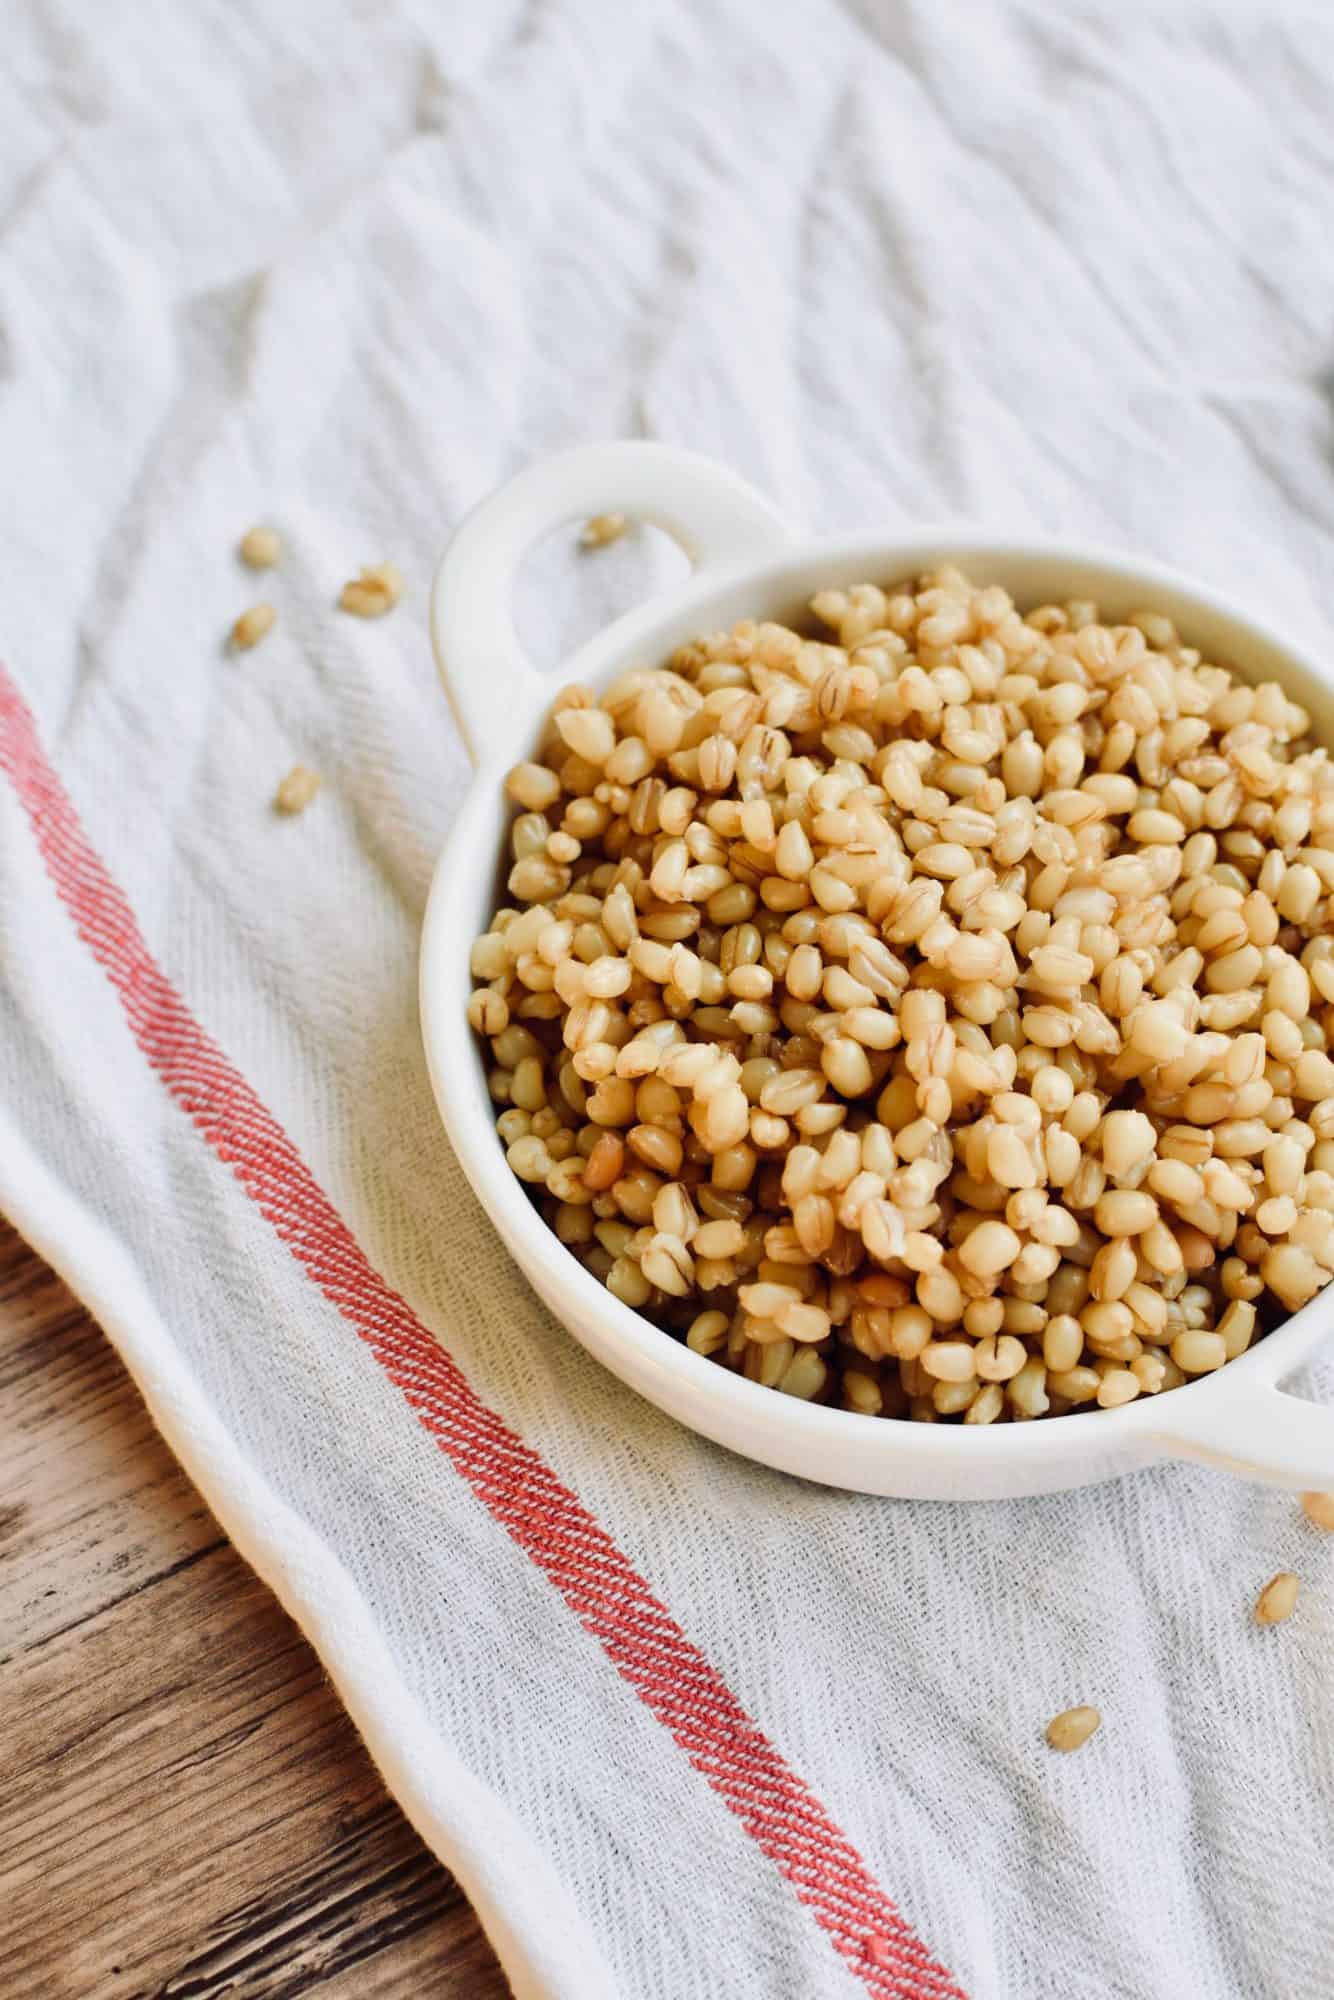 A small bowl of wheat berries on a white tea towel. A few grains have fallen out.